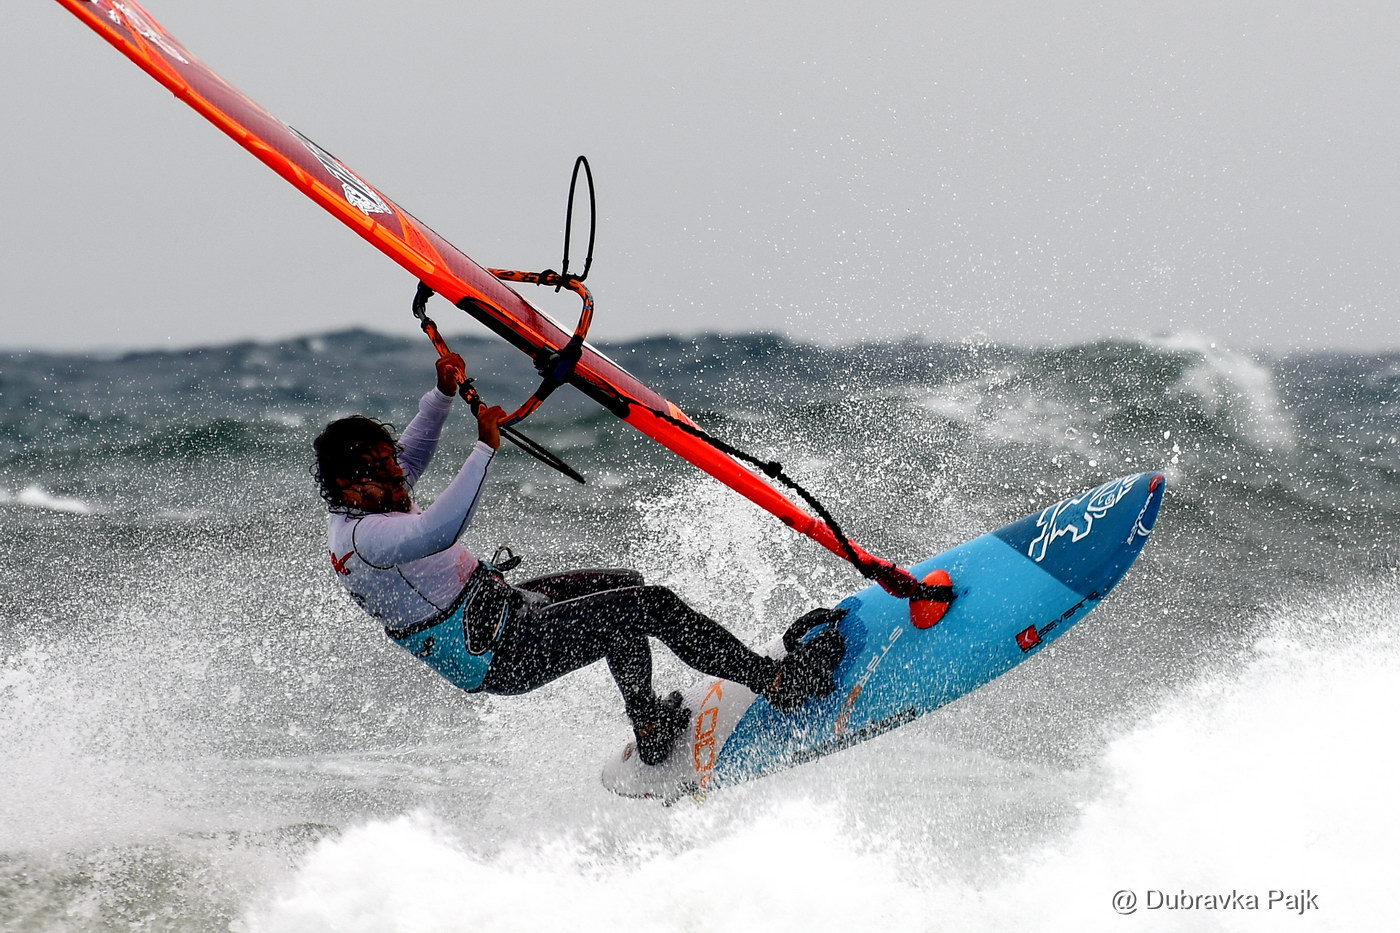 WINDSURF SARDEGNA, CHIA, APRIL 2019